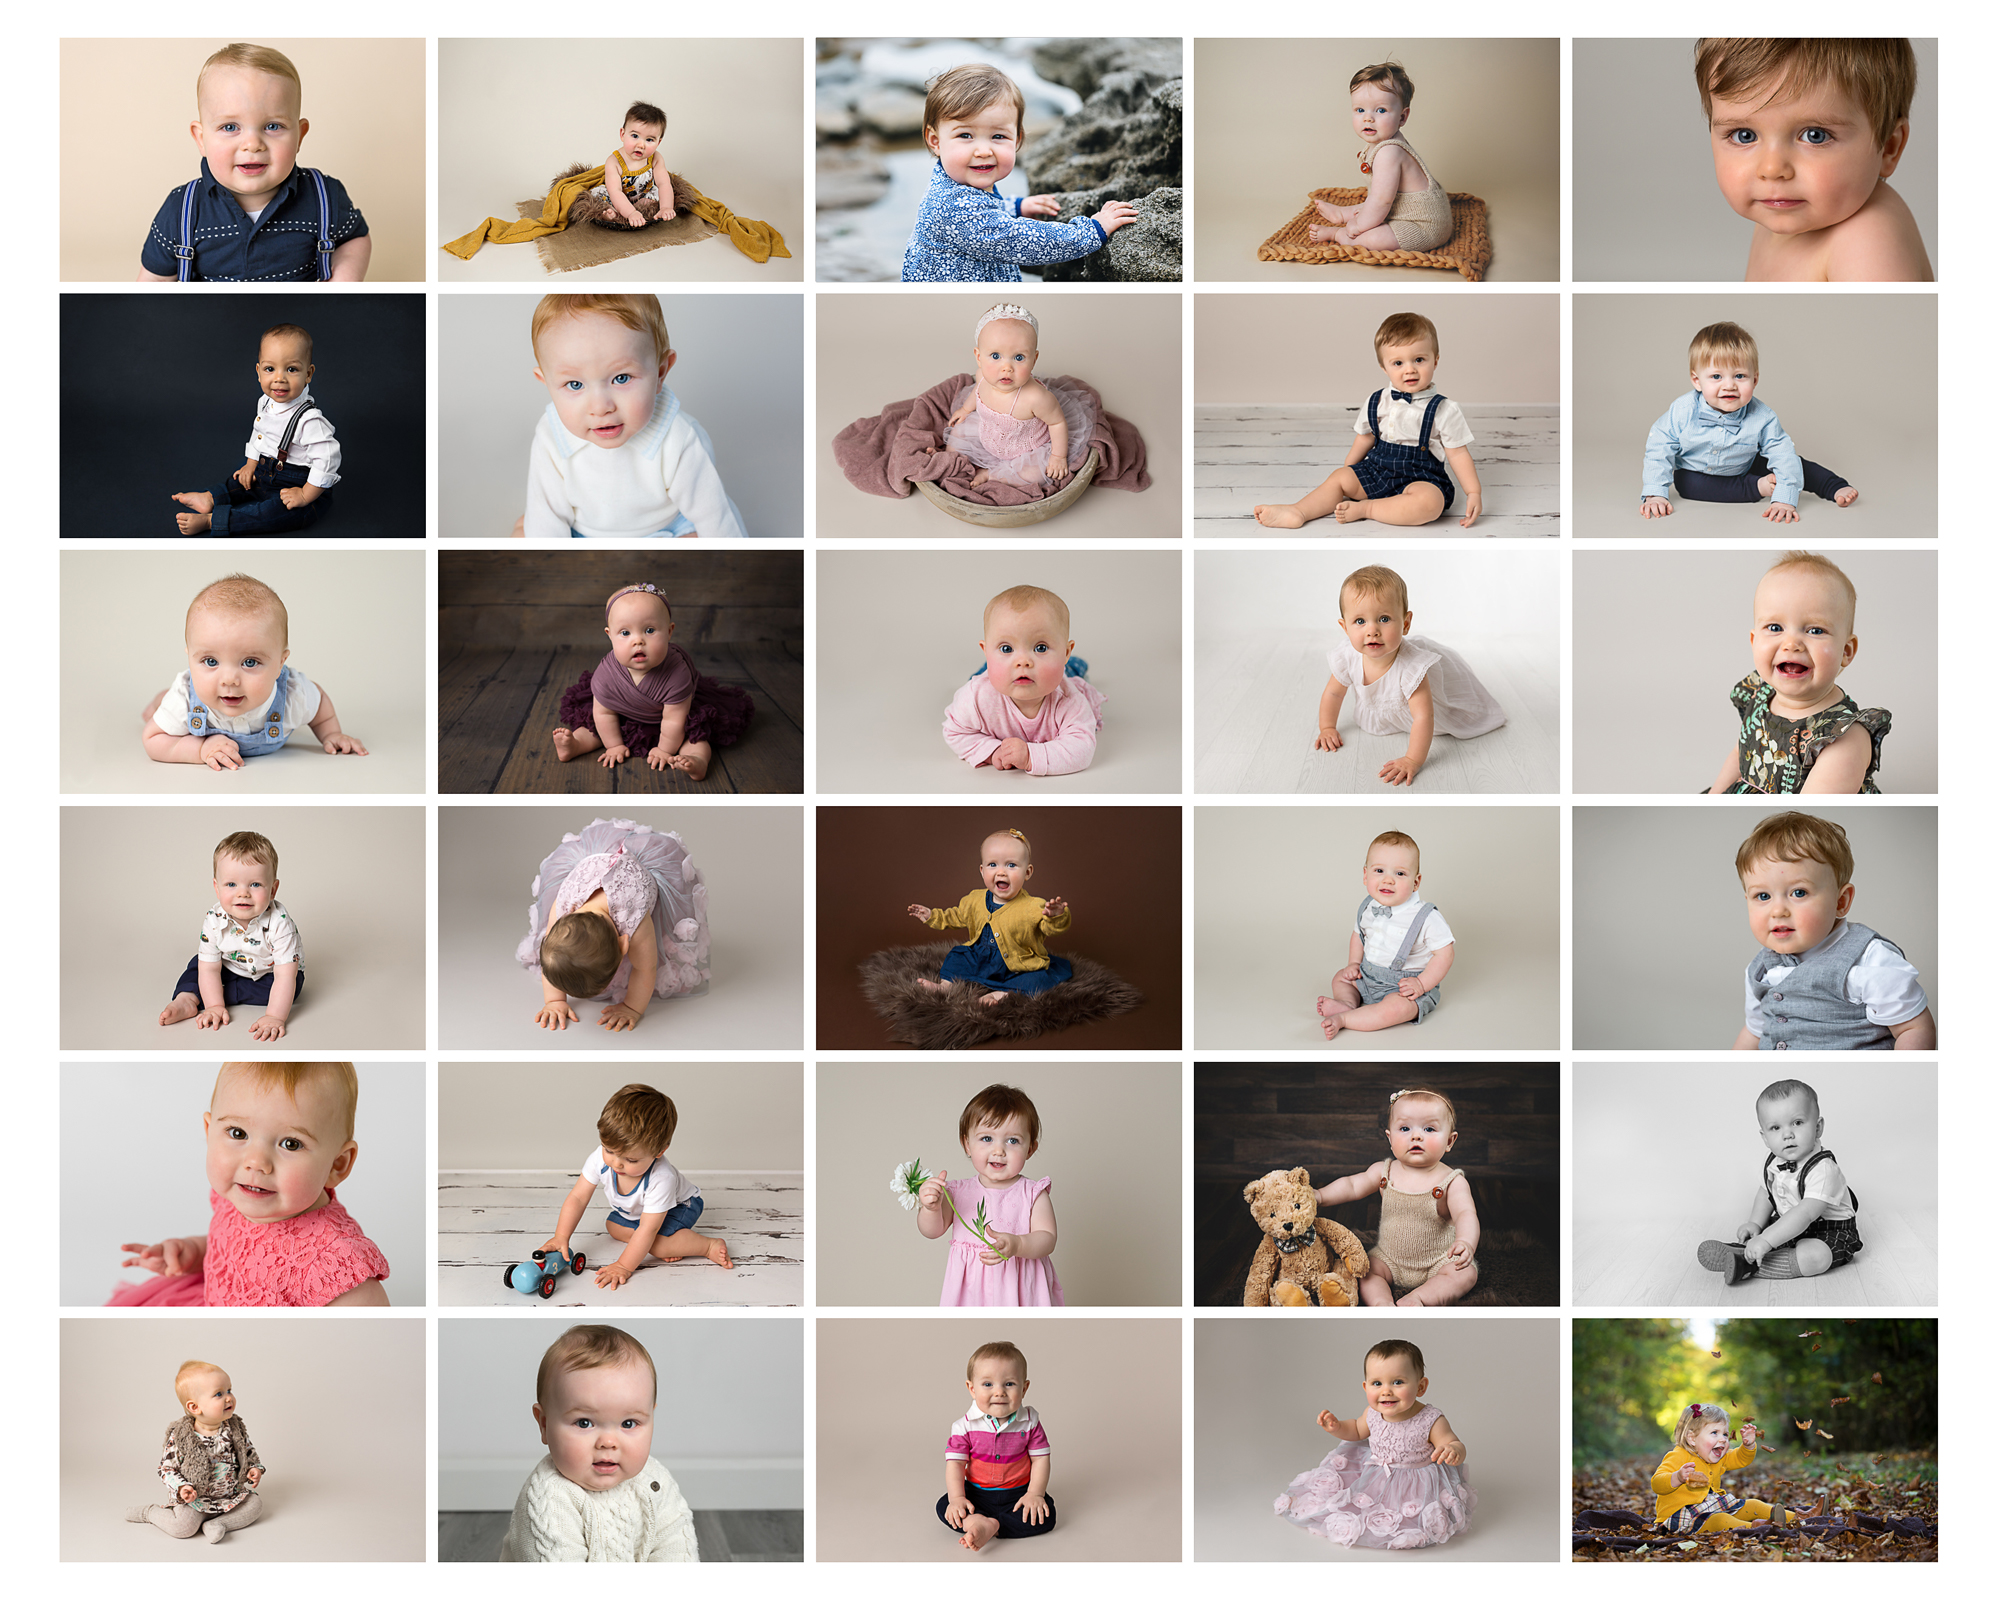 Baby, Little Sitter Photographer in South Wales, Cardiff, Caerphilly